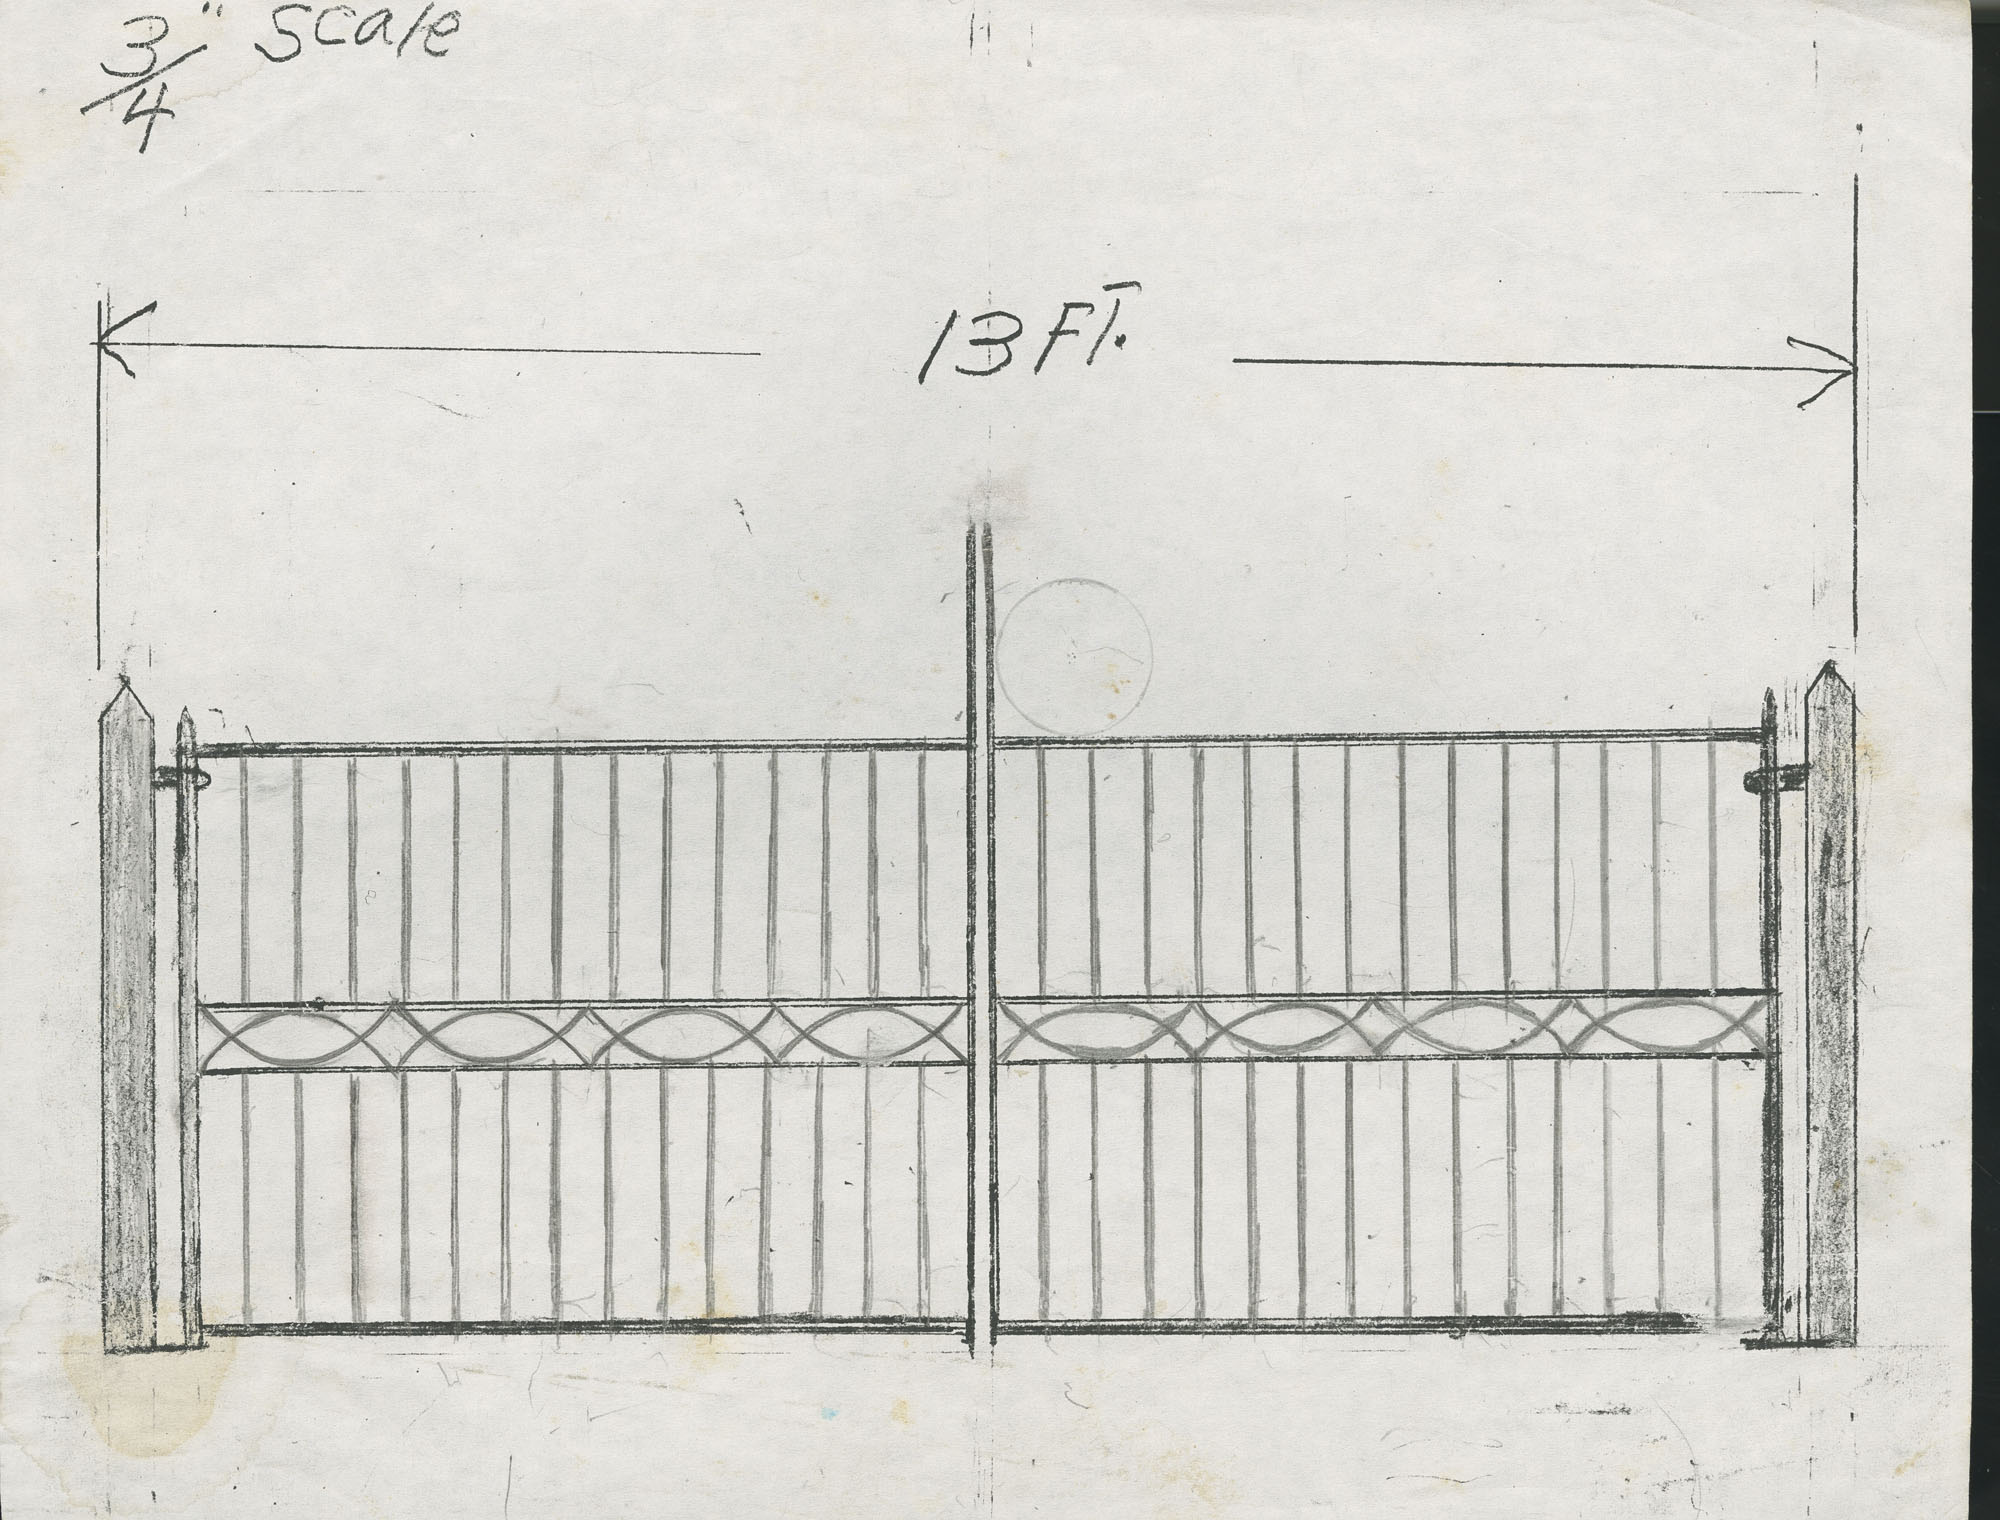 Unidentified gate with centered half circle design